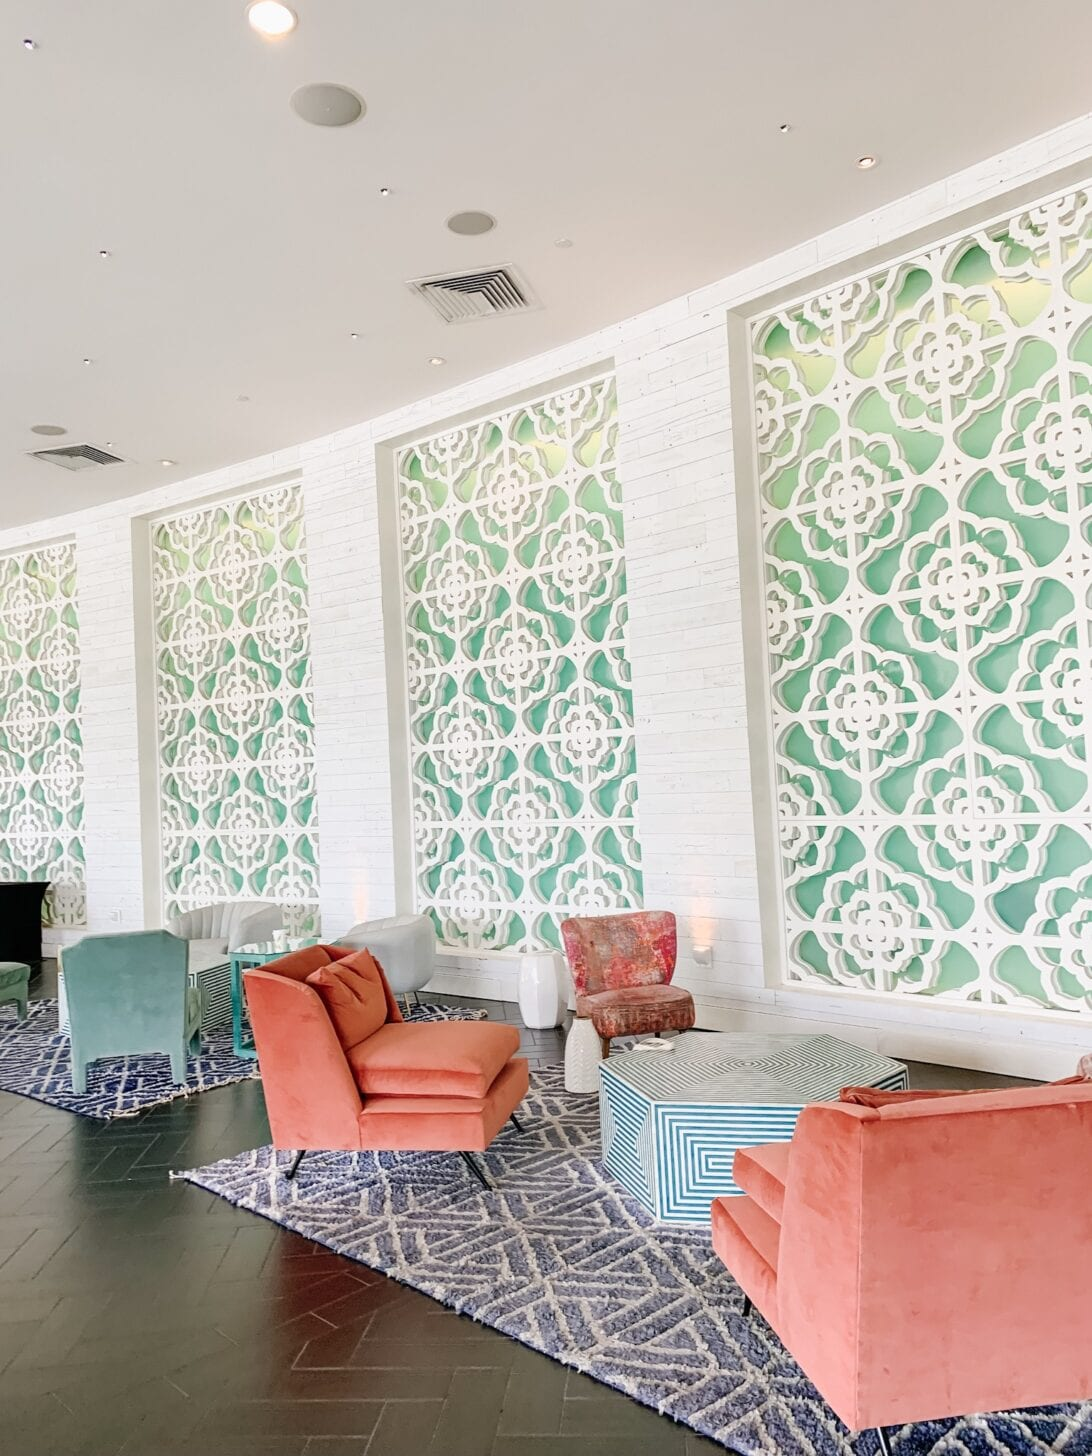 MID CENTURY MODERN, QUATRIFOIL WALLS, PINK COUCHES, GREEN COUCHES, RETRO DECOR